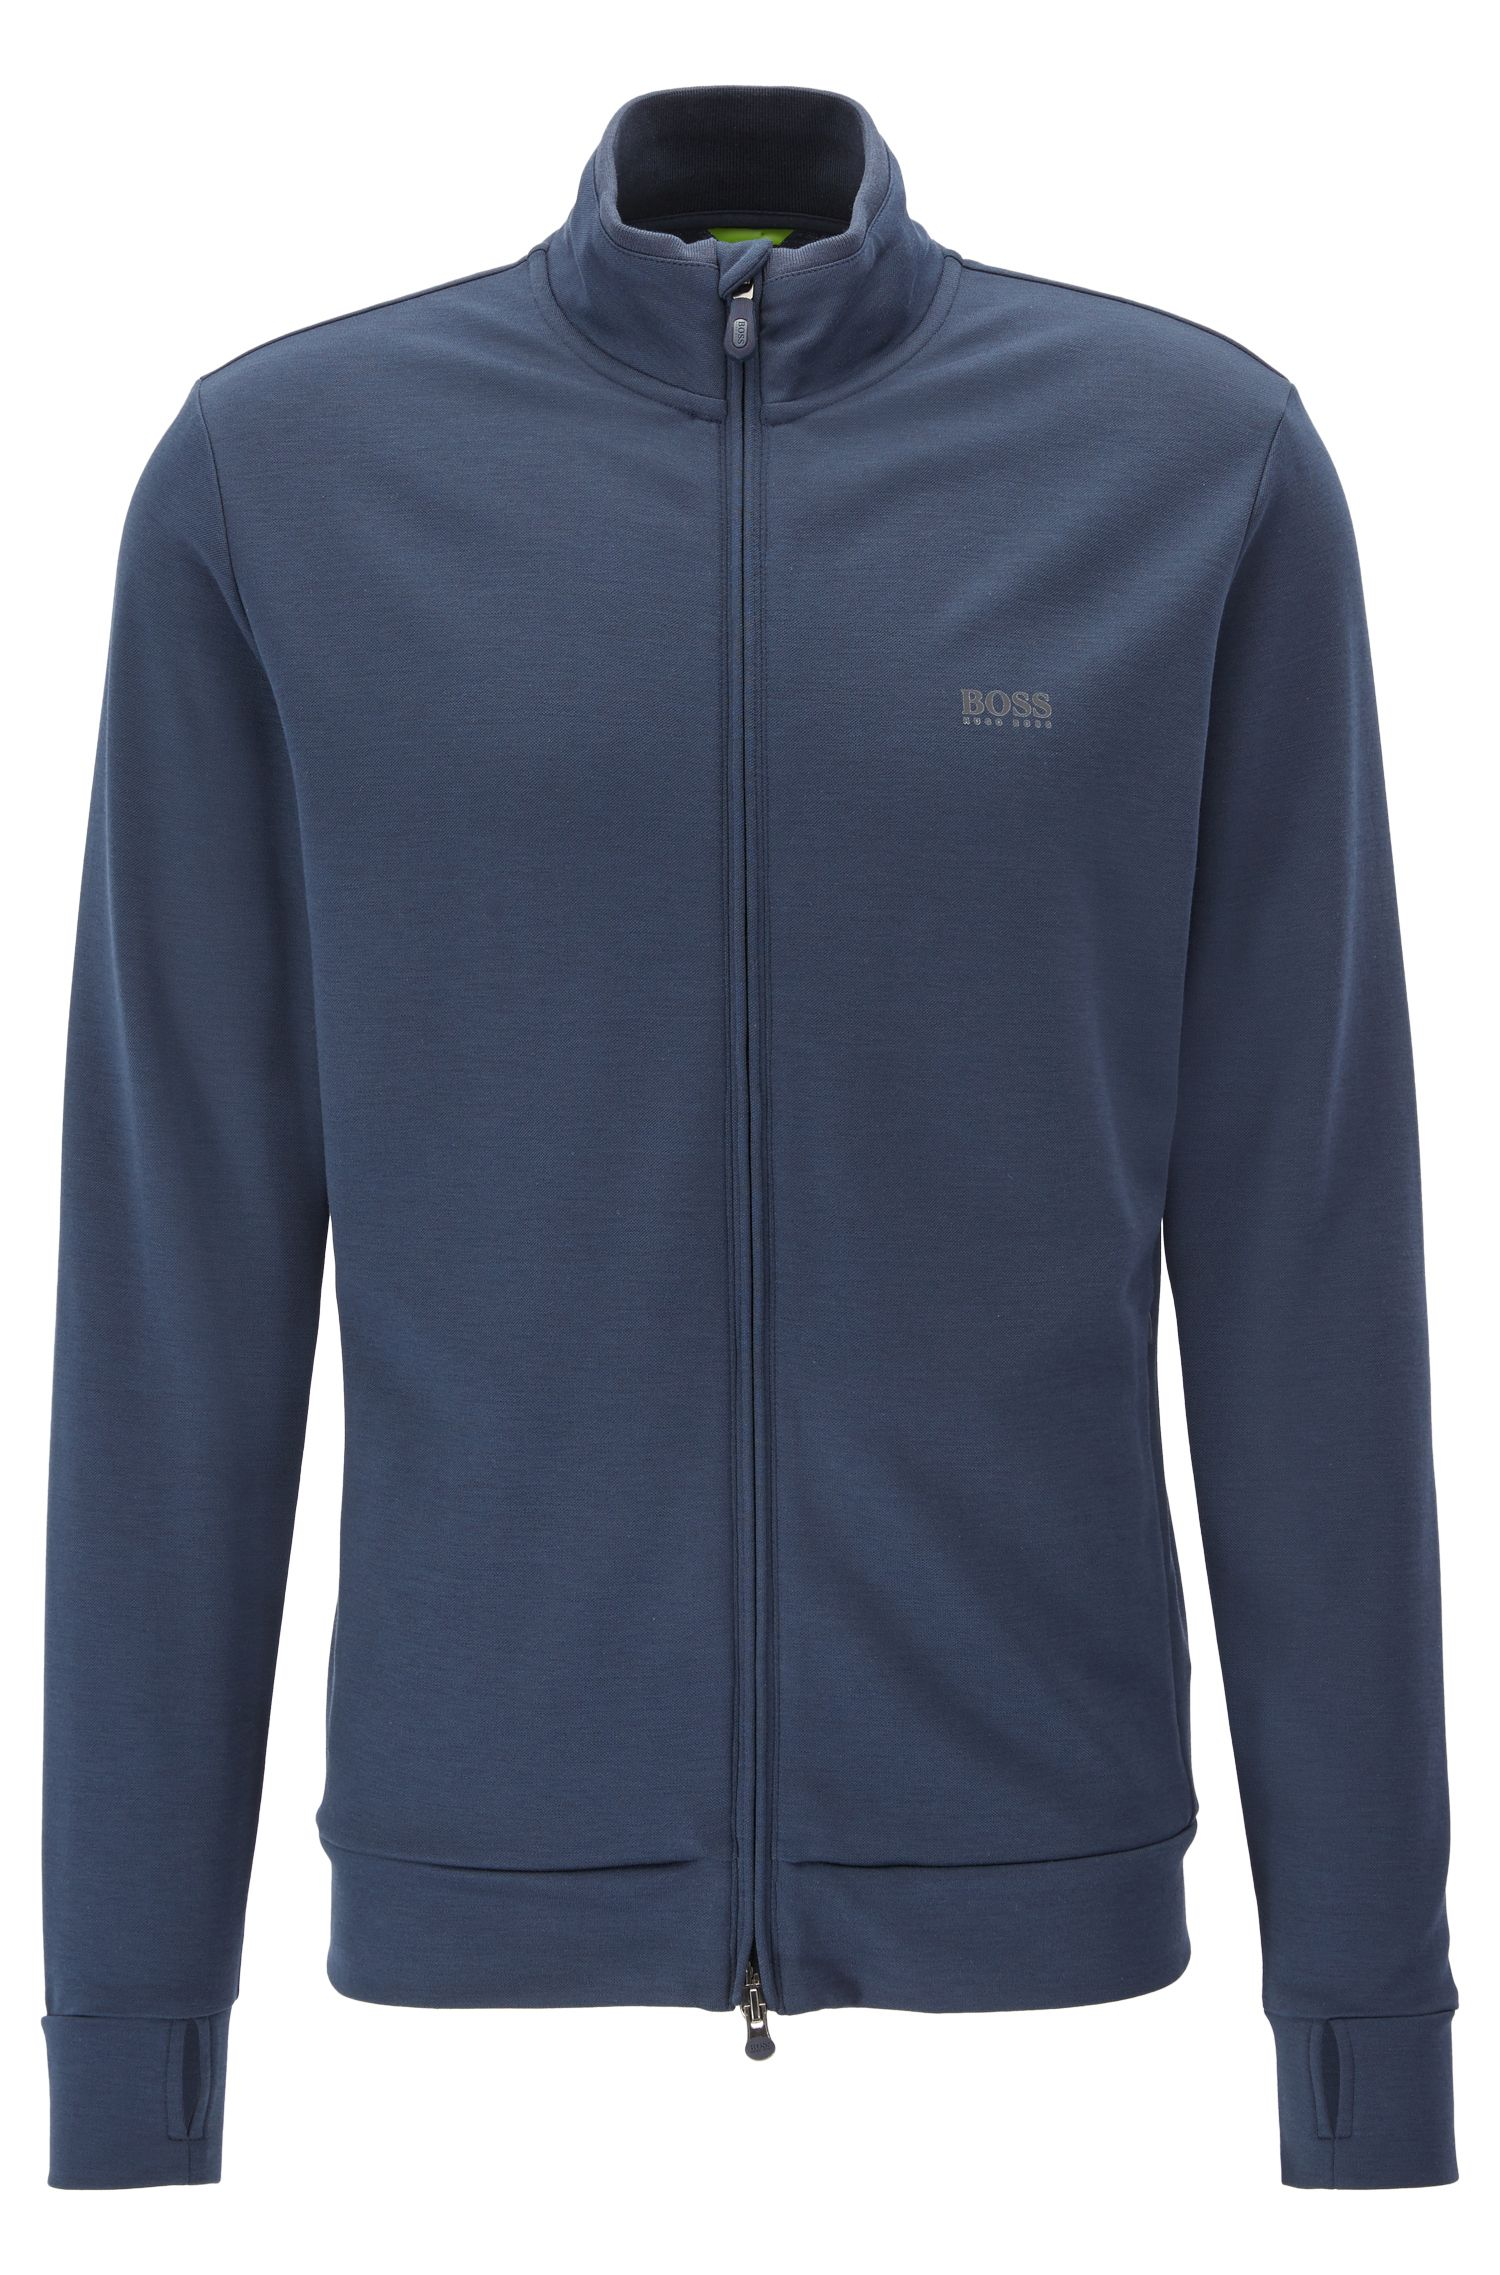 Cotton Blend Sweat Jacket | SL Tech